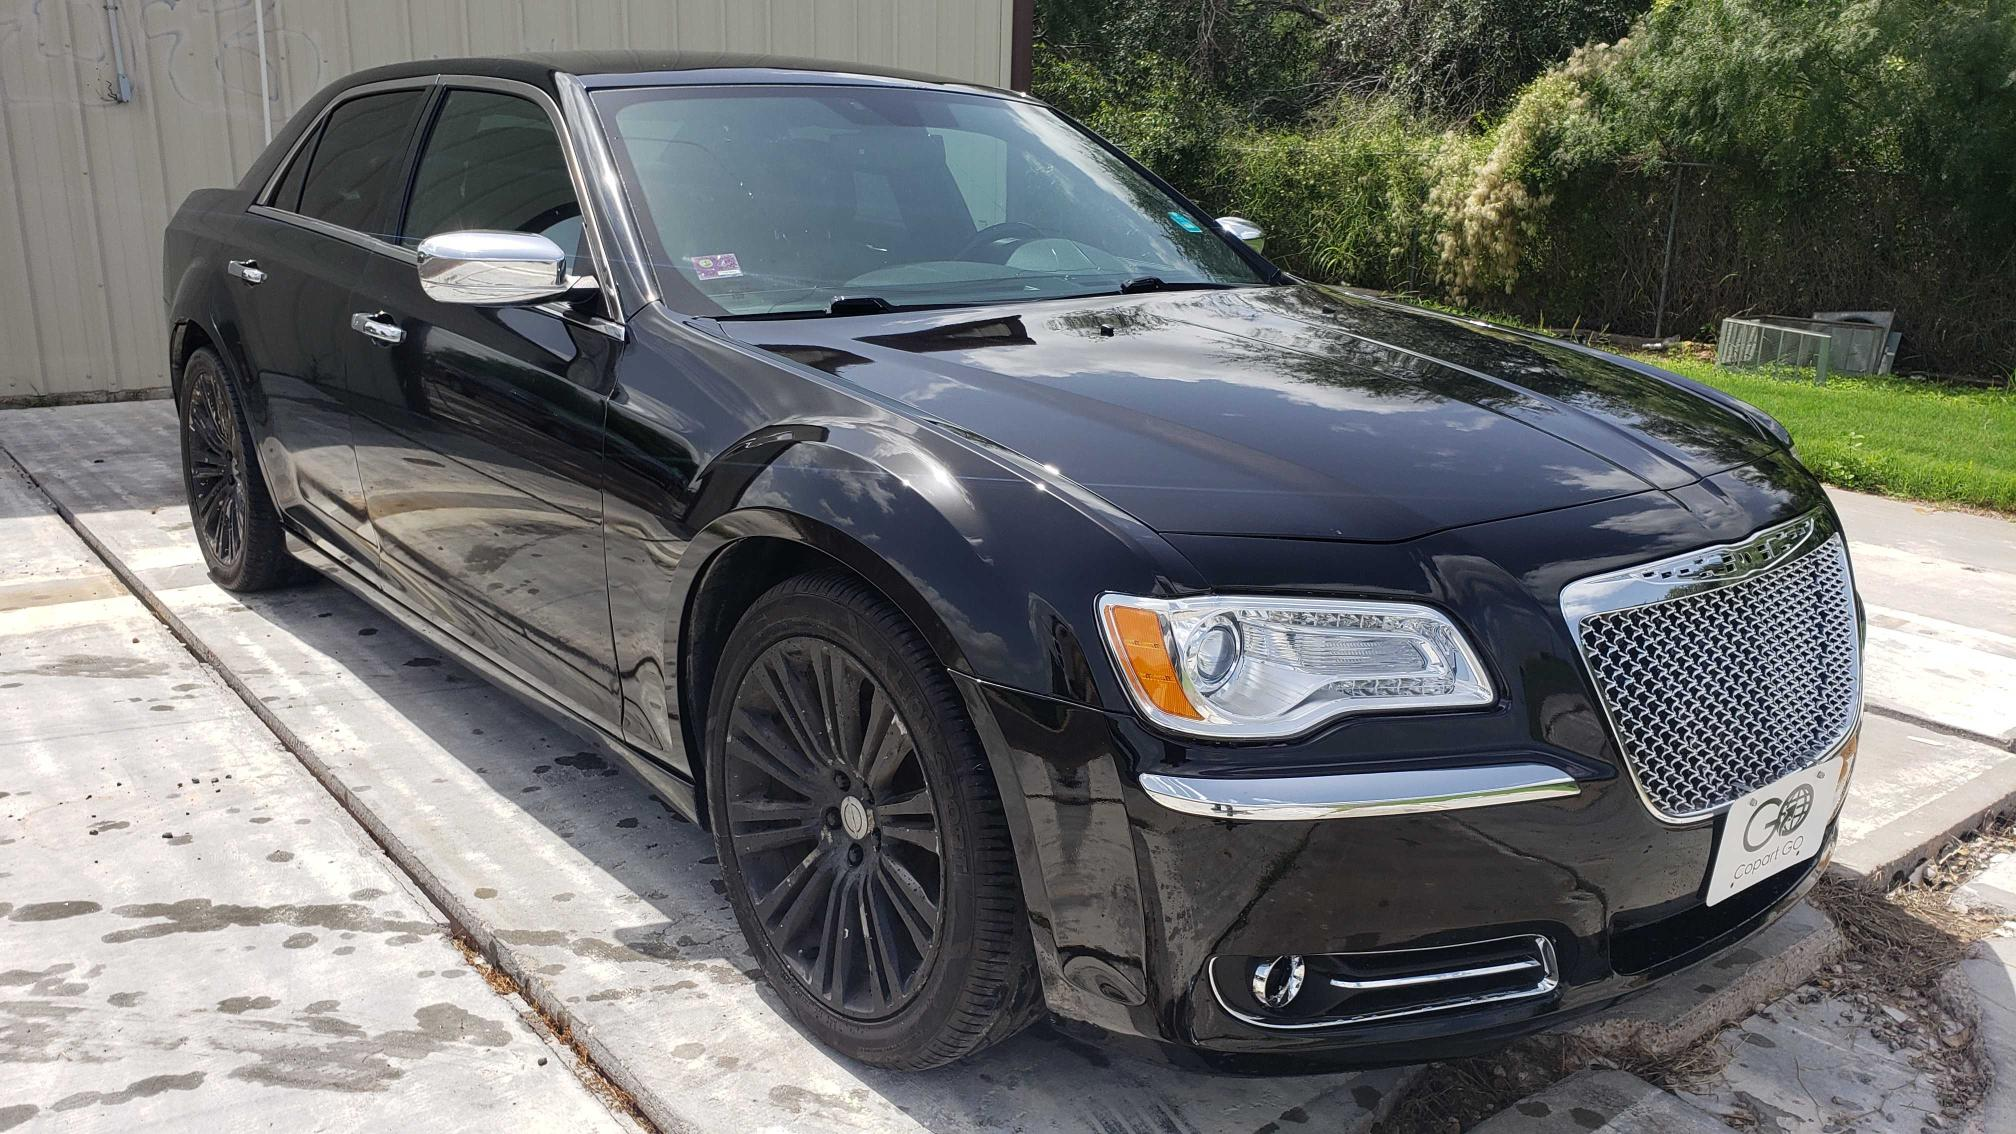 Used 2012 CHRYSLER 300 - Small image. Lot 51819211